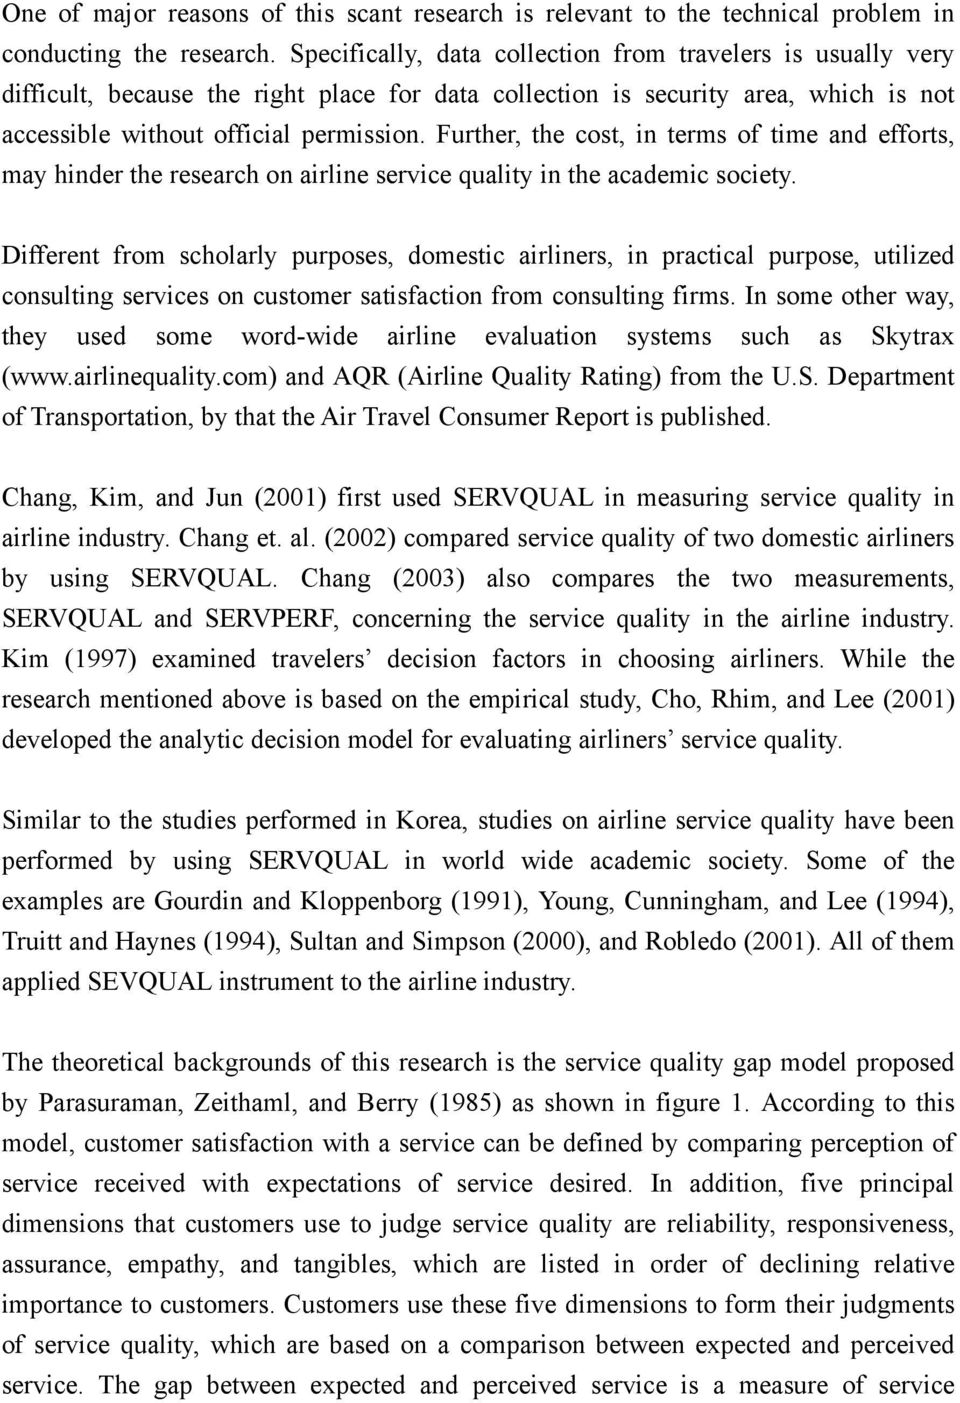 Further, the cost, in terms of time and efforts, may hinder the research on airline service quality in the academic society.